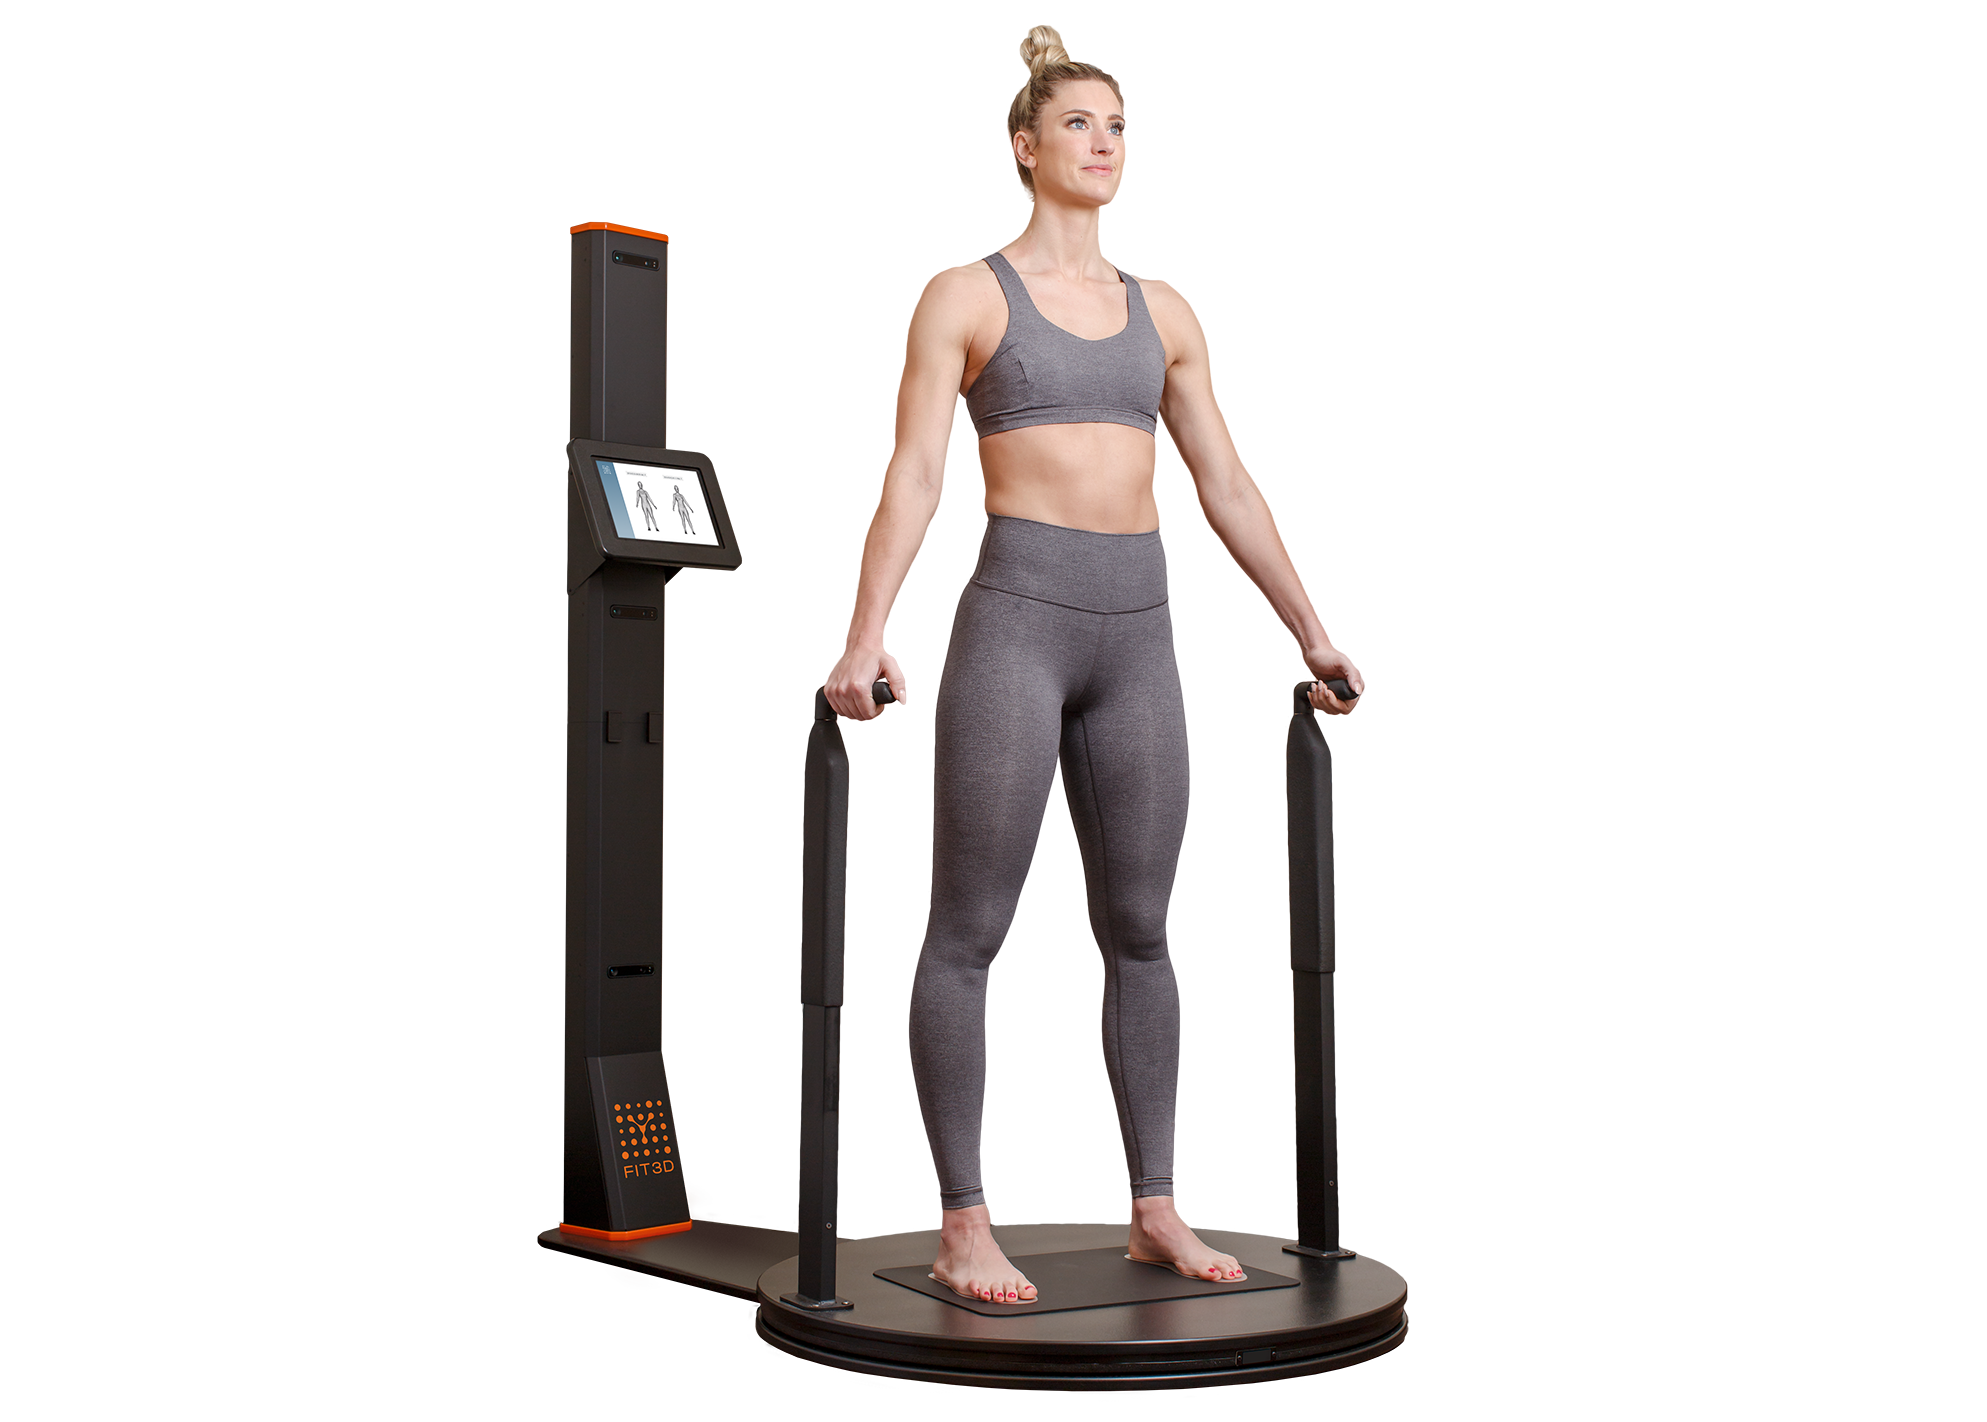 Autonomous Hardware - Our 3D Body Scanner was built to be a precision machine. In addition to being self-serving, our scans have 200% less movement than other scanners without handles. The scan time itself takes just 35 seconds and offers an integrated scale for posture analysis - ideal for chiropractors. This machine is designed to be easy to use & accurate. But more importantly, it gives you a baseline to help people start your program.